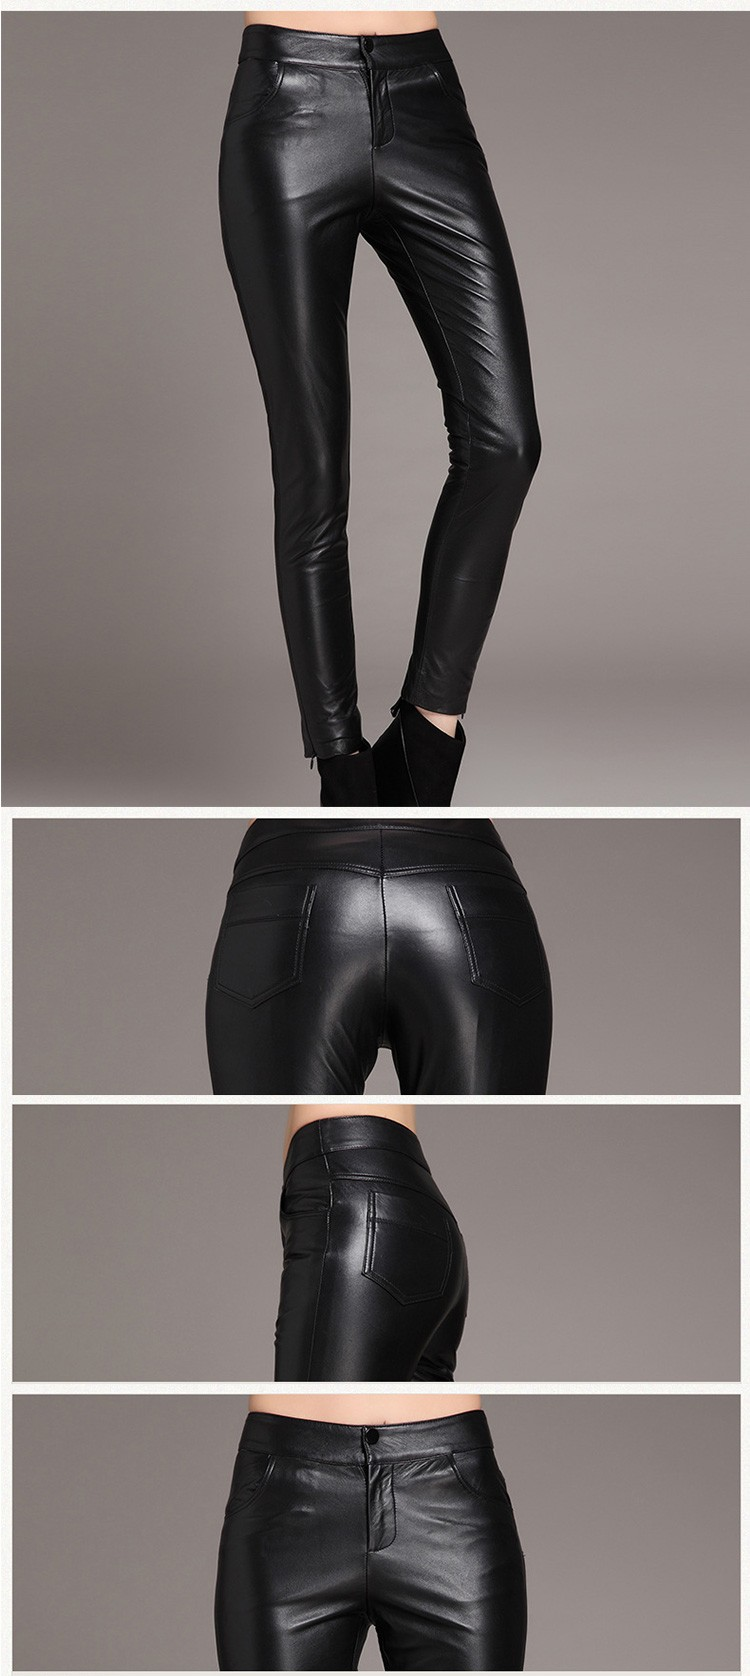 YEEL OEM outsourcing ventilate high waist tight pencil feet women leather pants